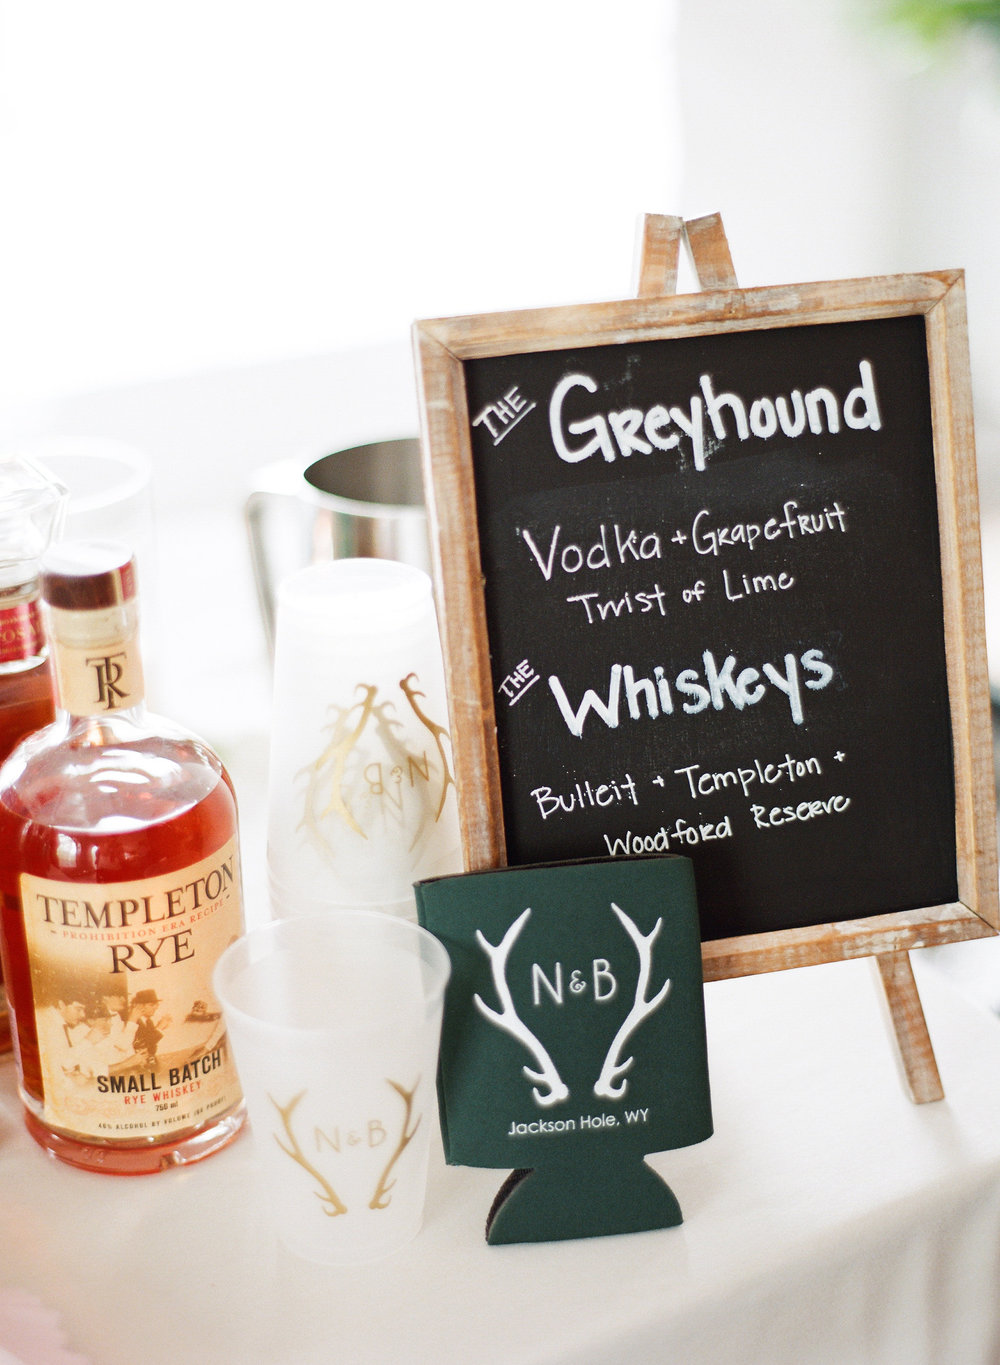 Jackson Hole wedding speciality drinks